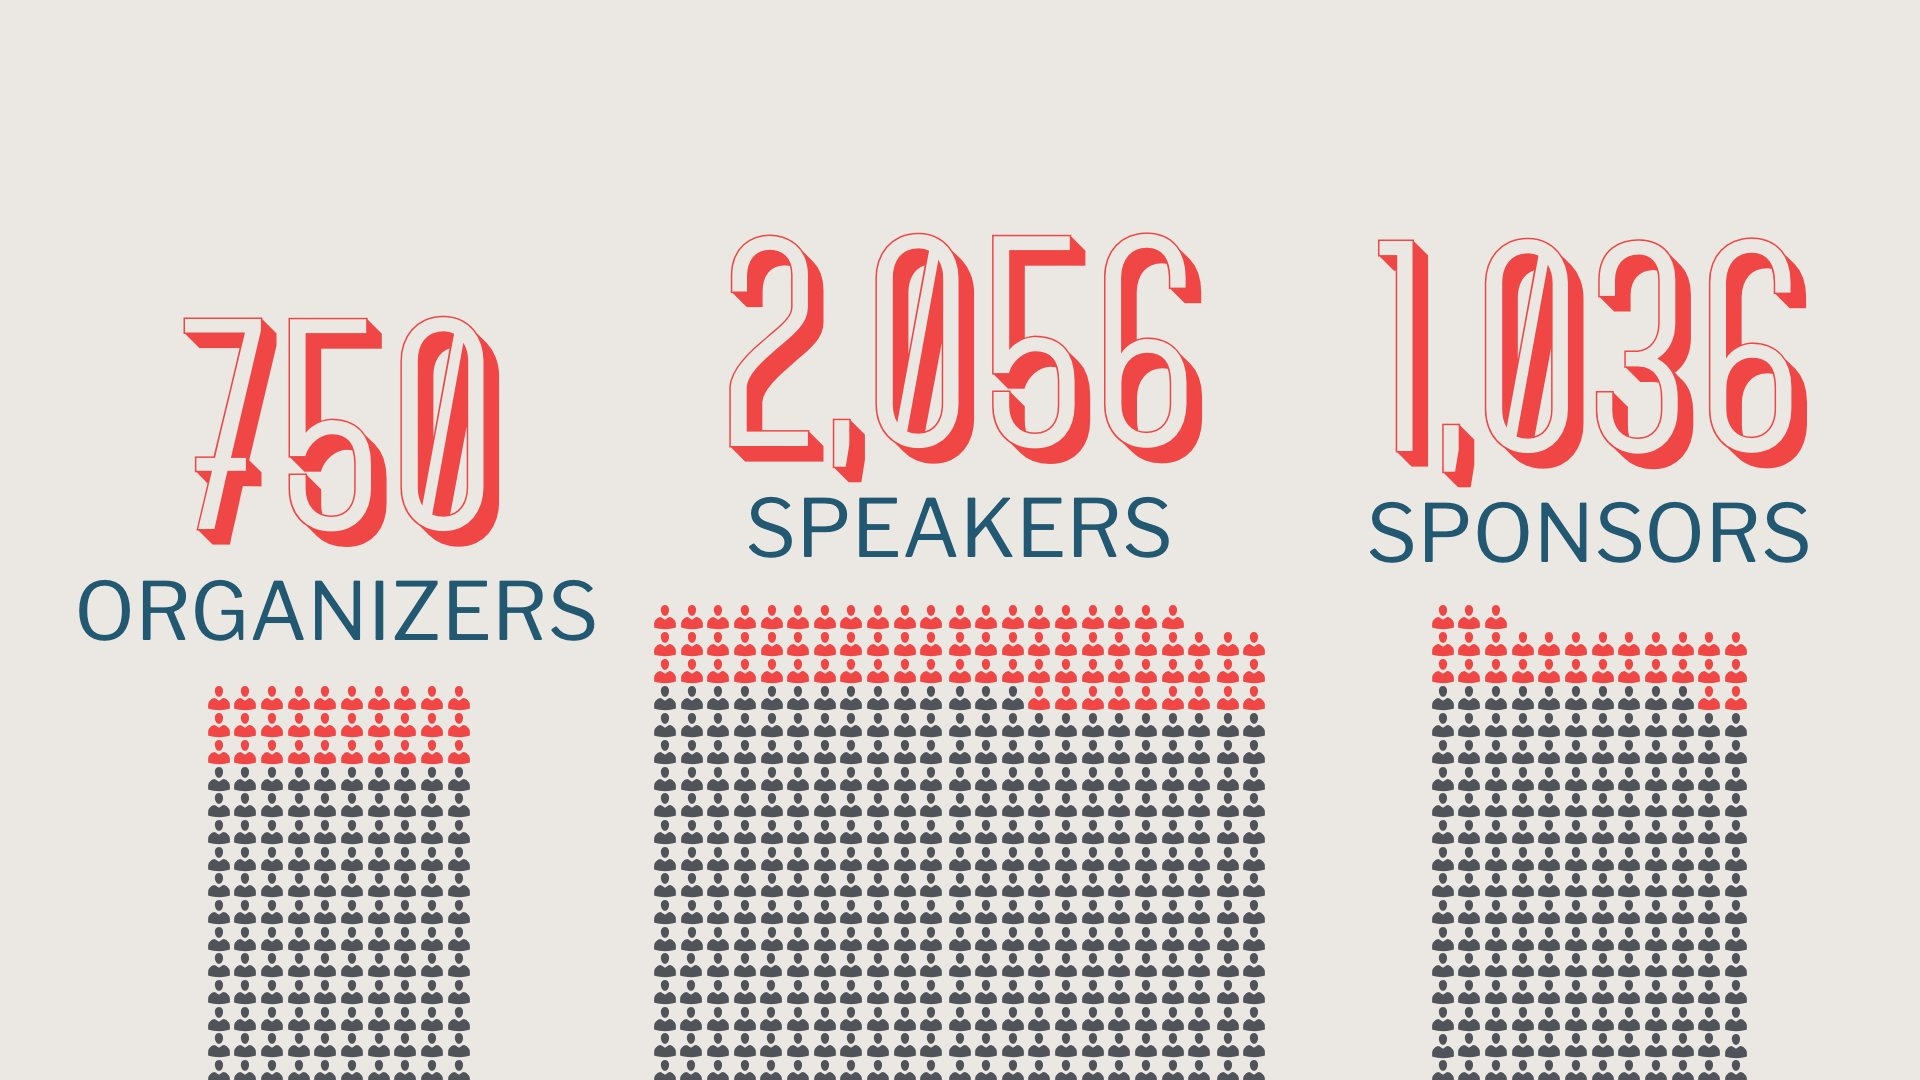 Ticket sales, organizers, speakers, and sponsor numbers continue to grow. #wcus https://t.co/K9xMU55j3h